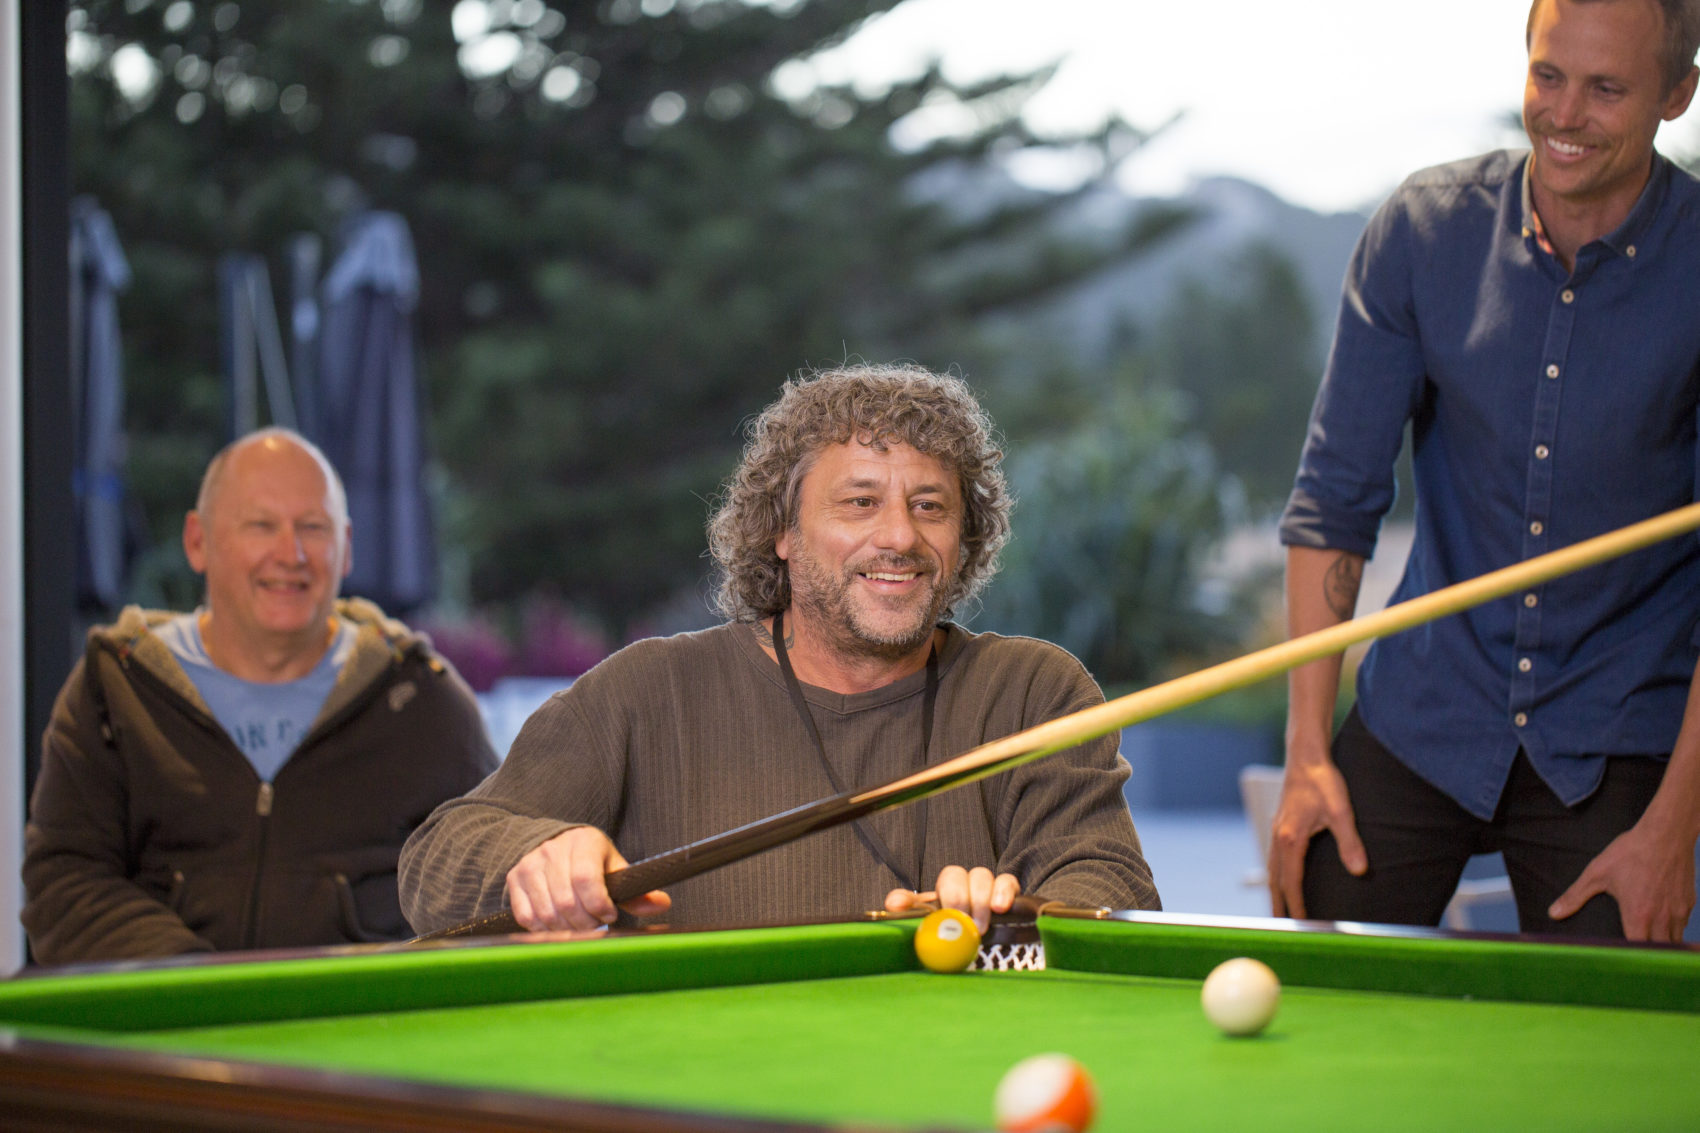 Sargood on Collaroy guests playing billiards with Adaptive Sport and Recreation Specialist